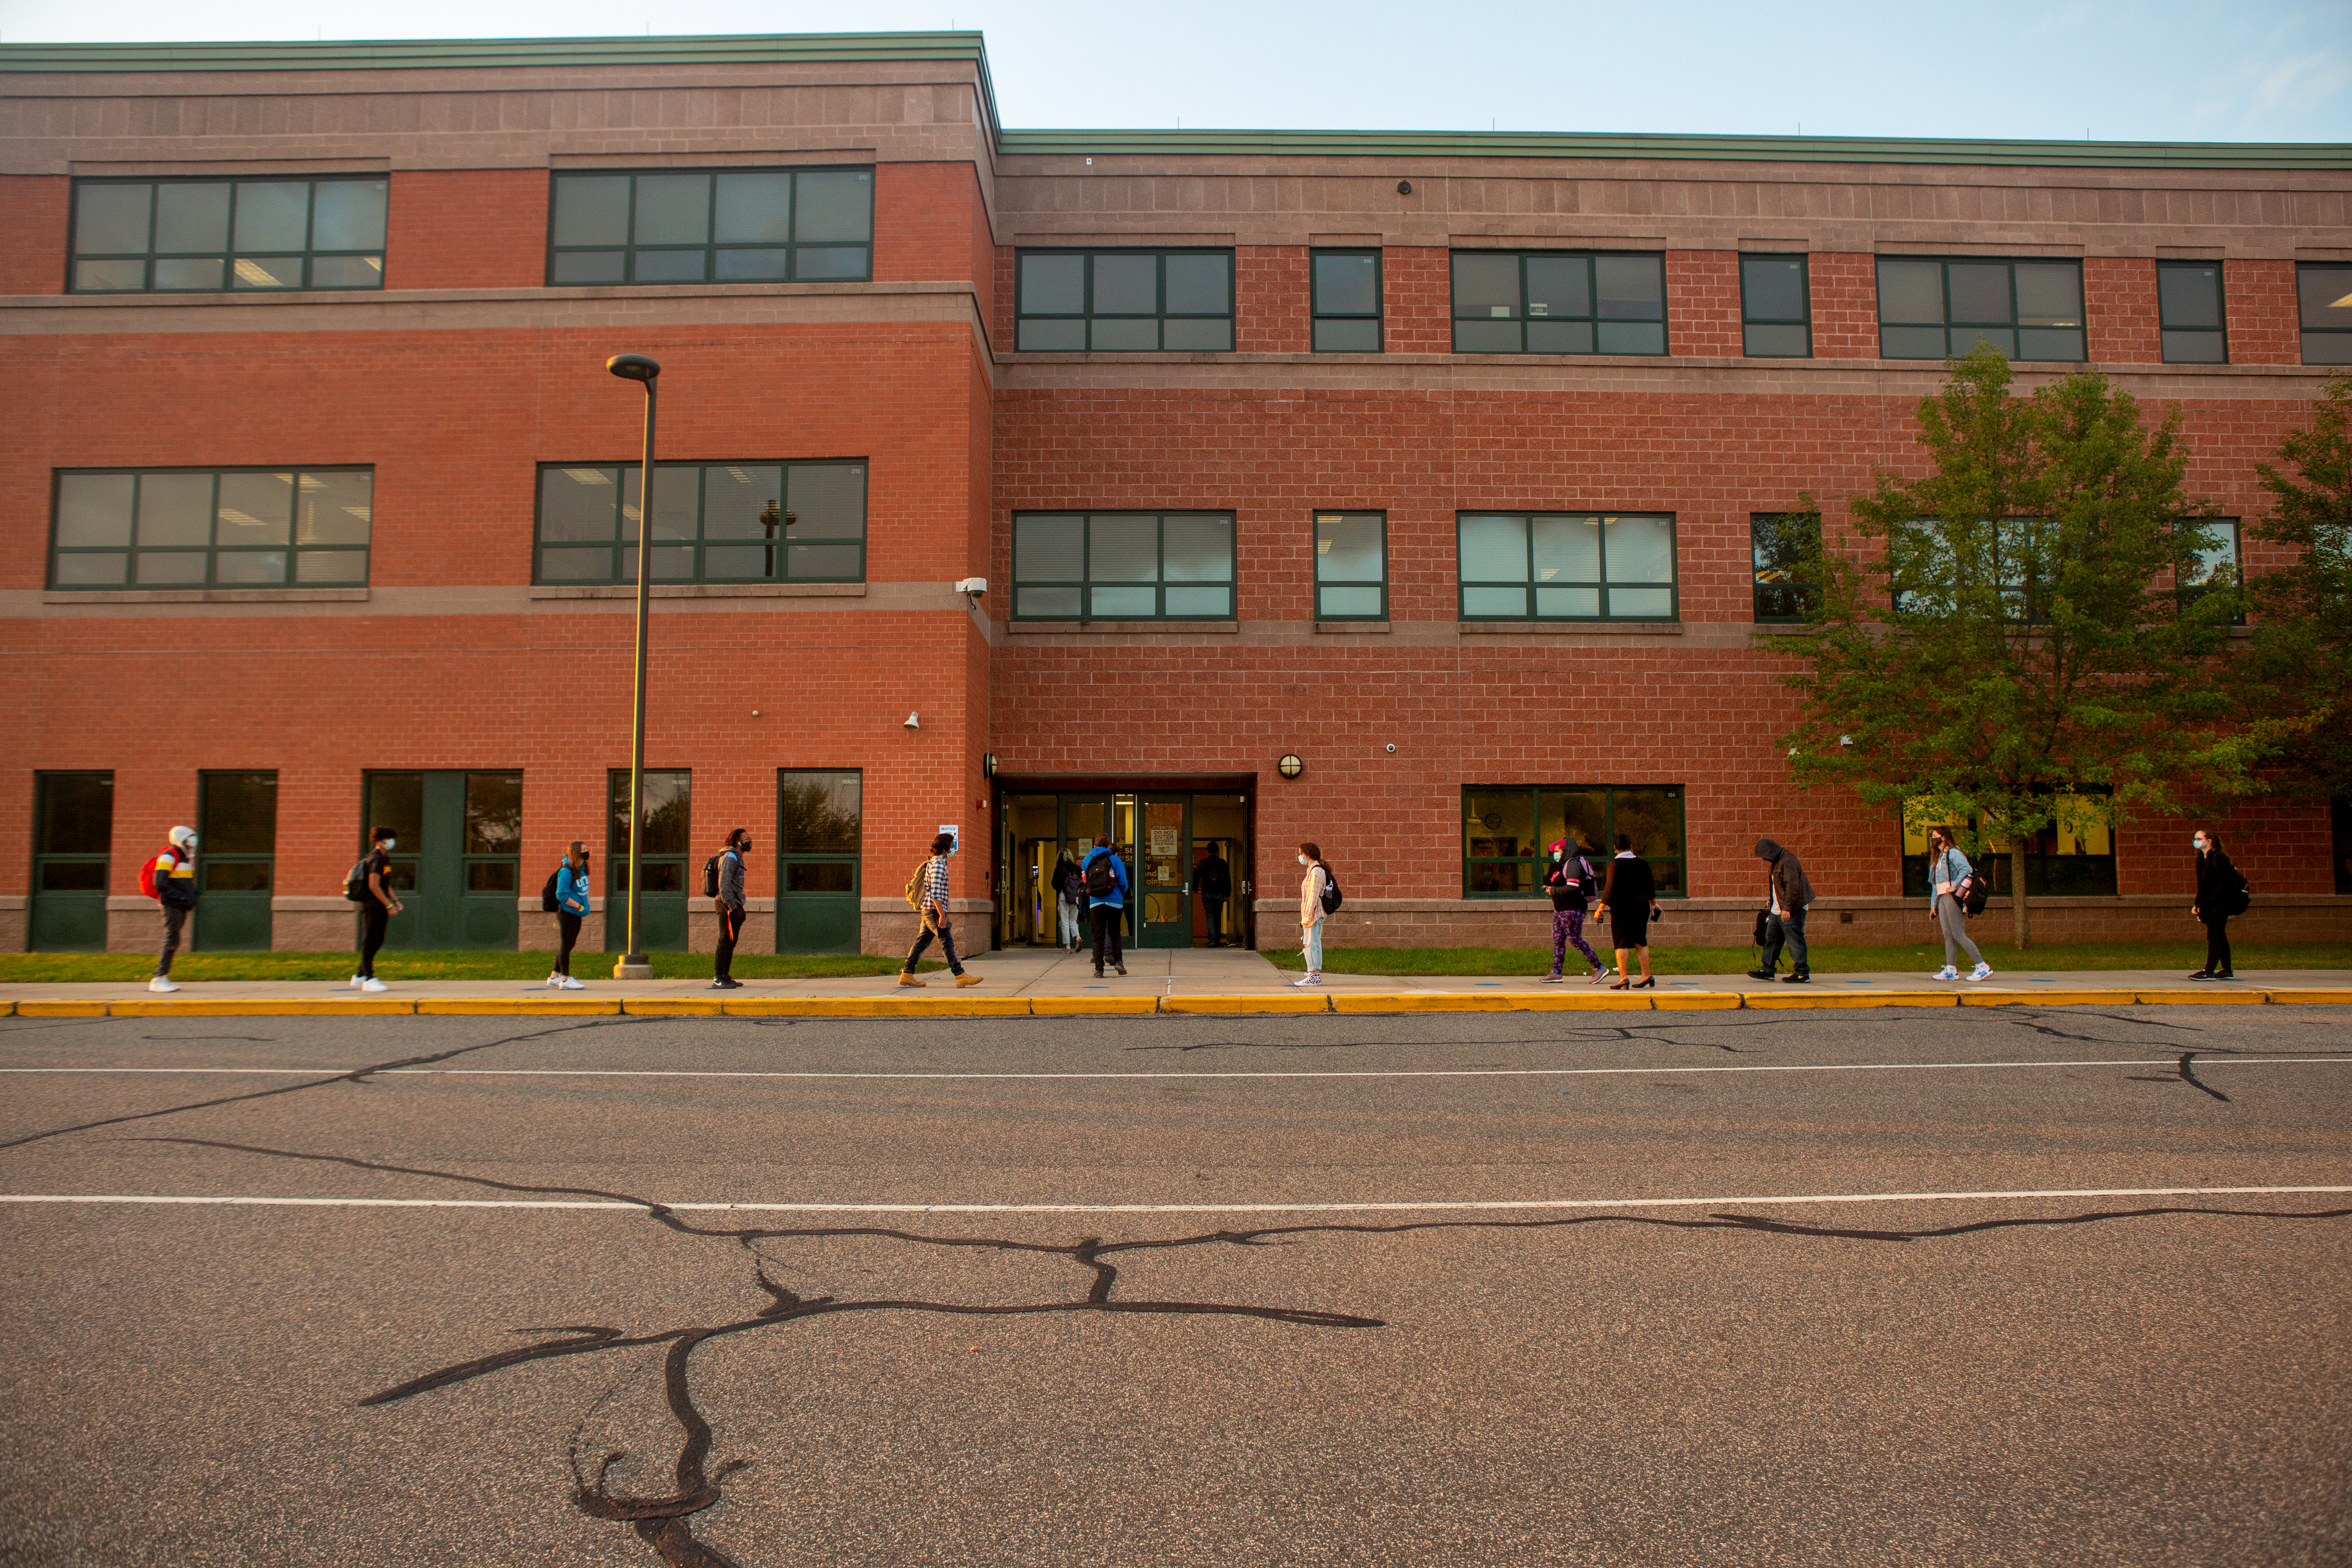 Students line up on socially distanced dots painted on the sidewalk to wait their turn to be scanned by a temperature screener before classes.